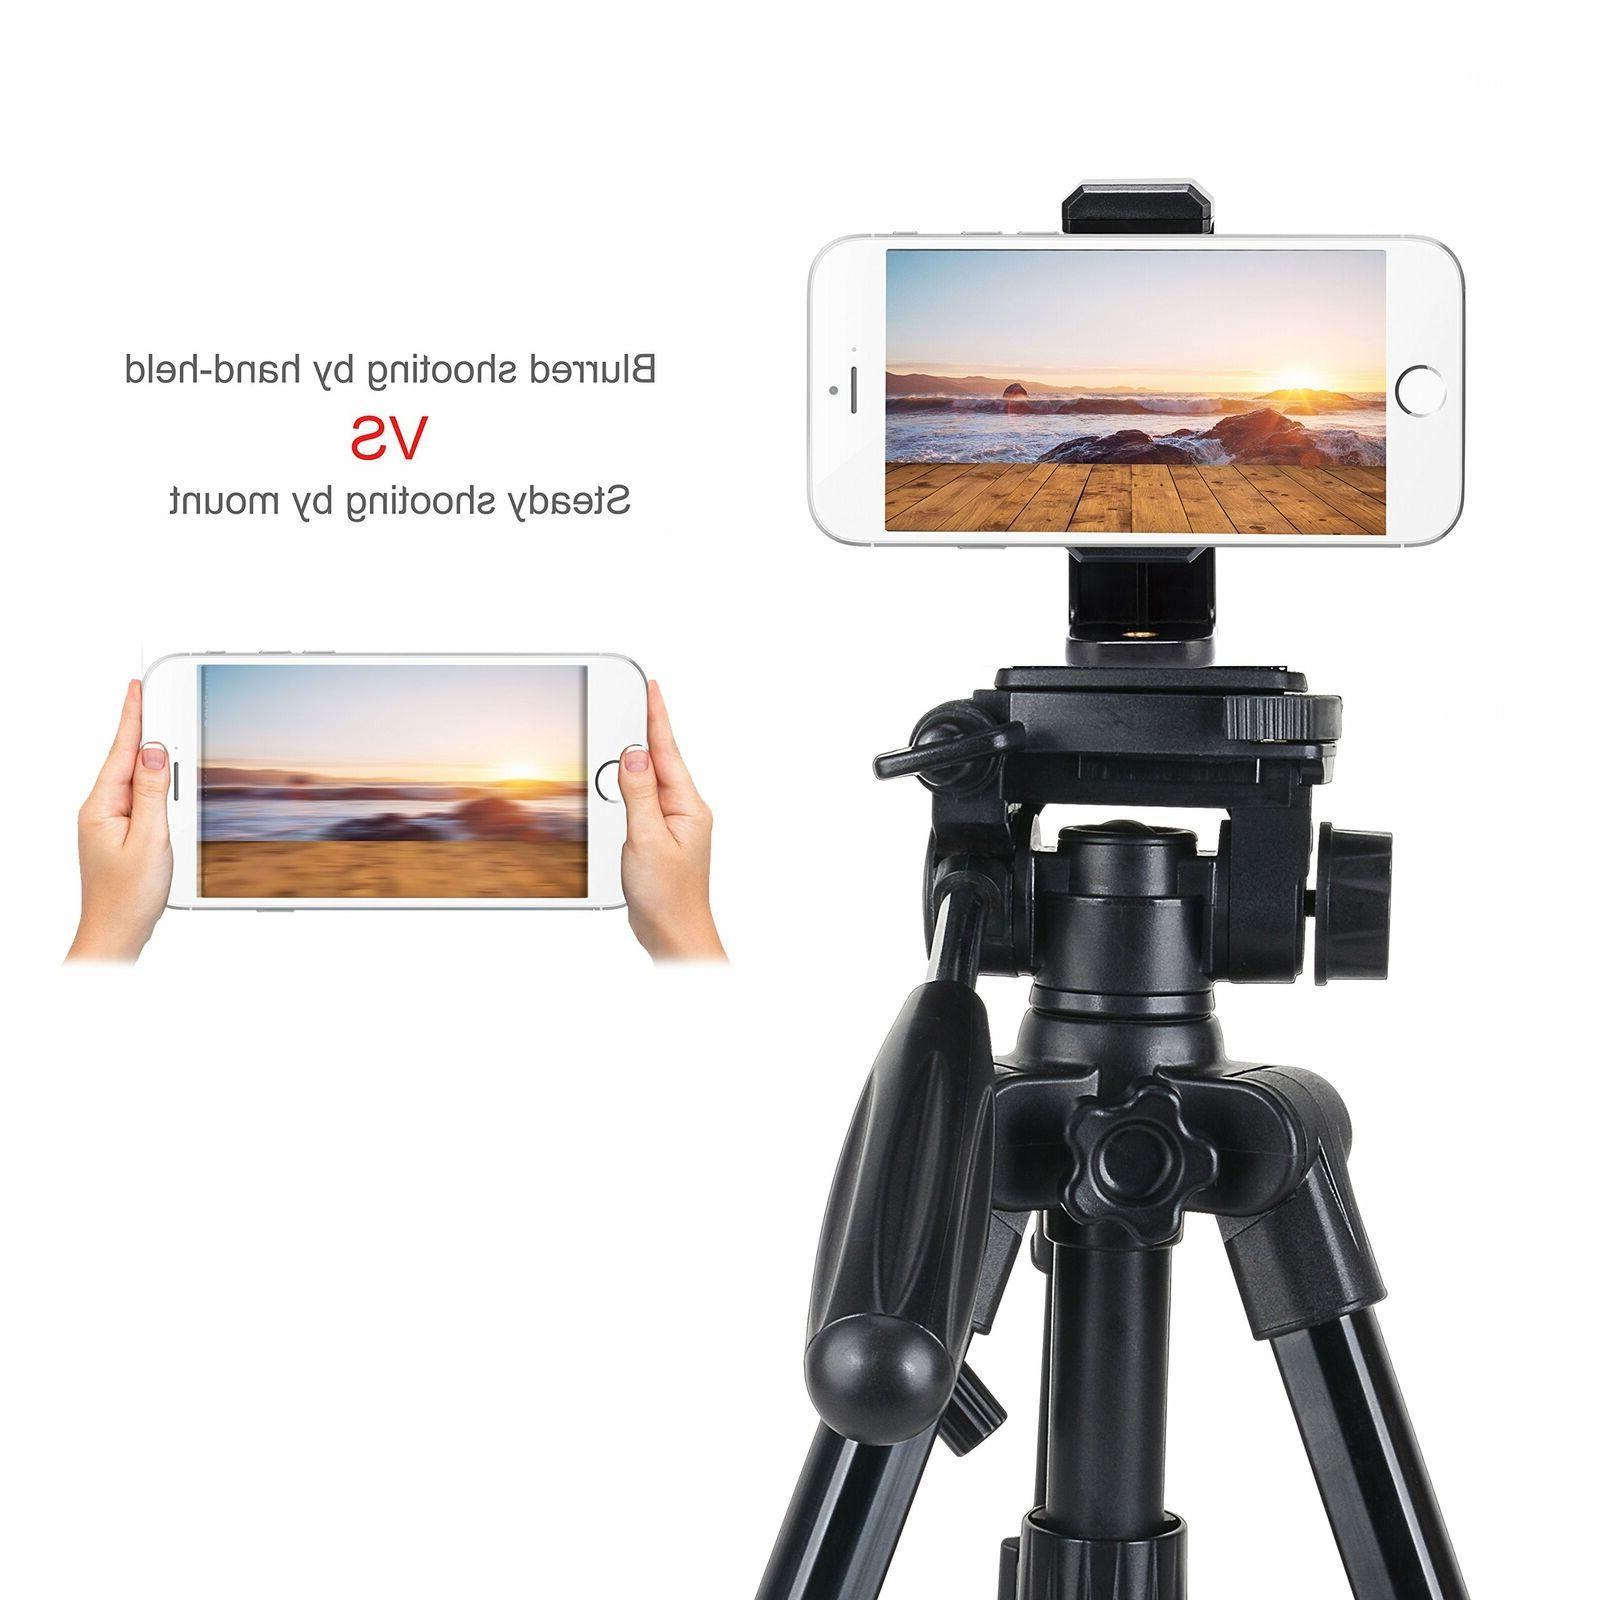 Smartphone Mount Camera Holder Adapter For Filming